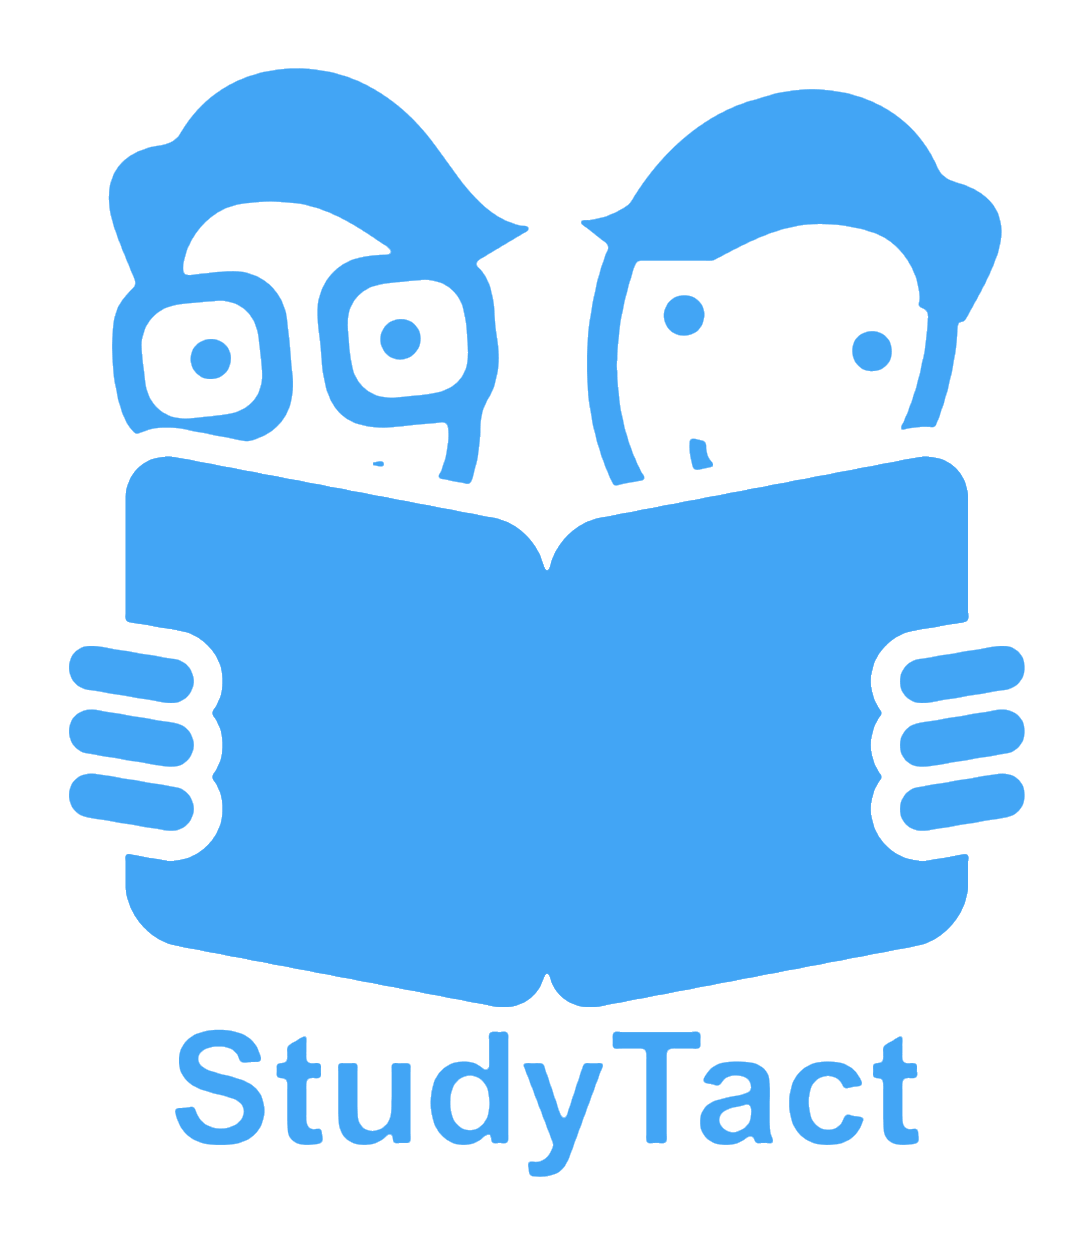 clipart freeuse download StudyTact